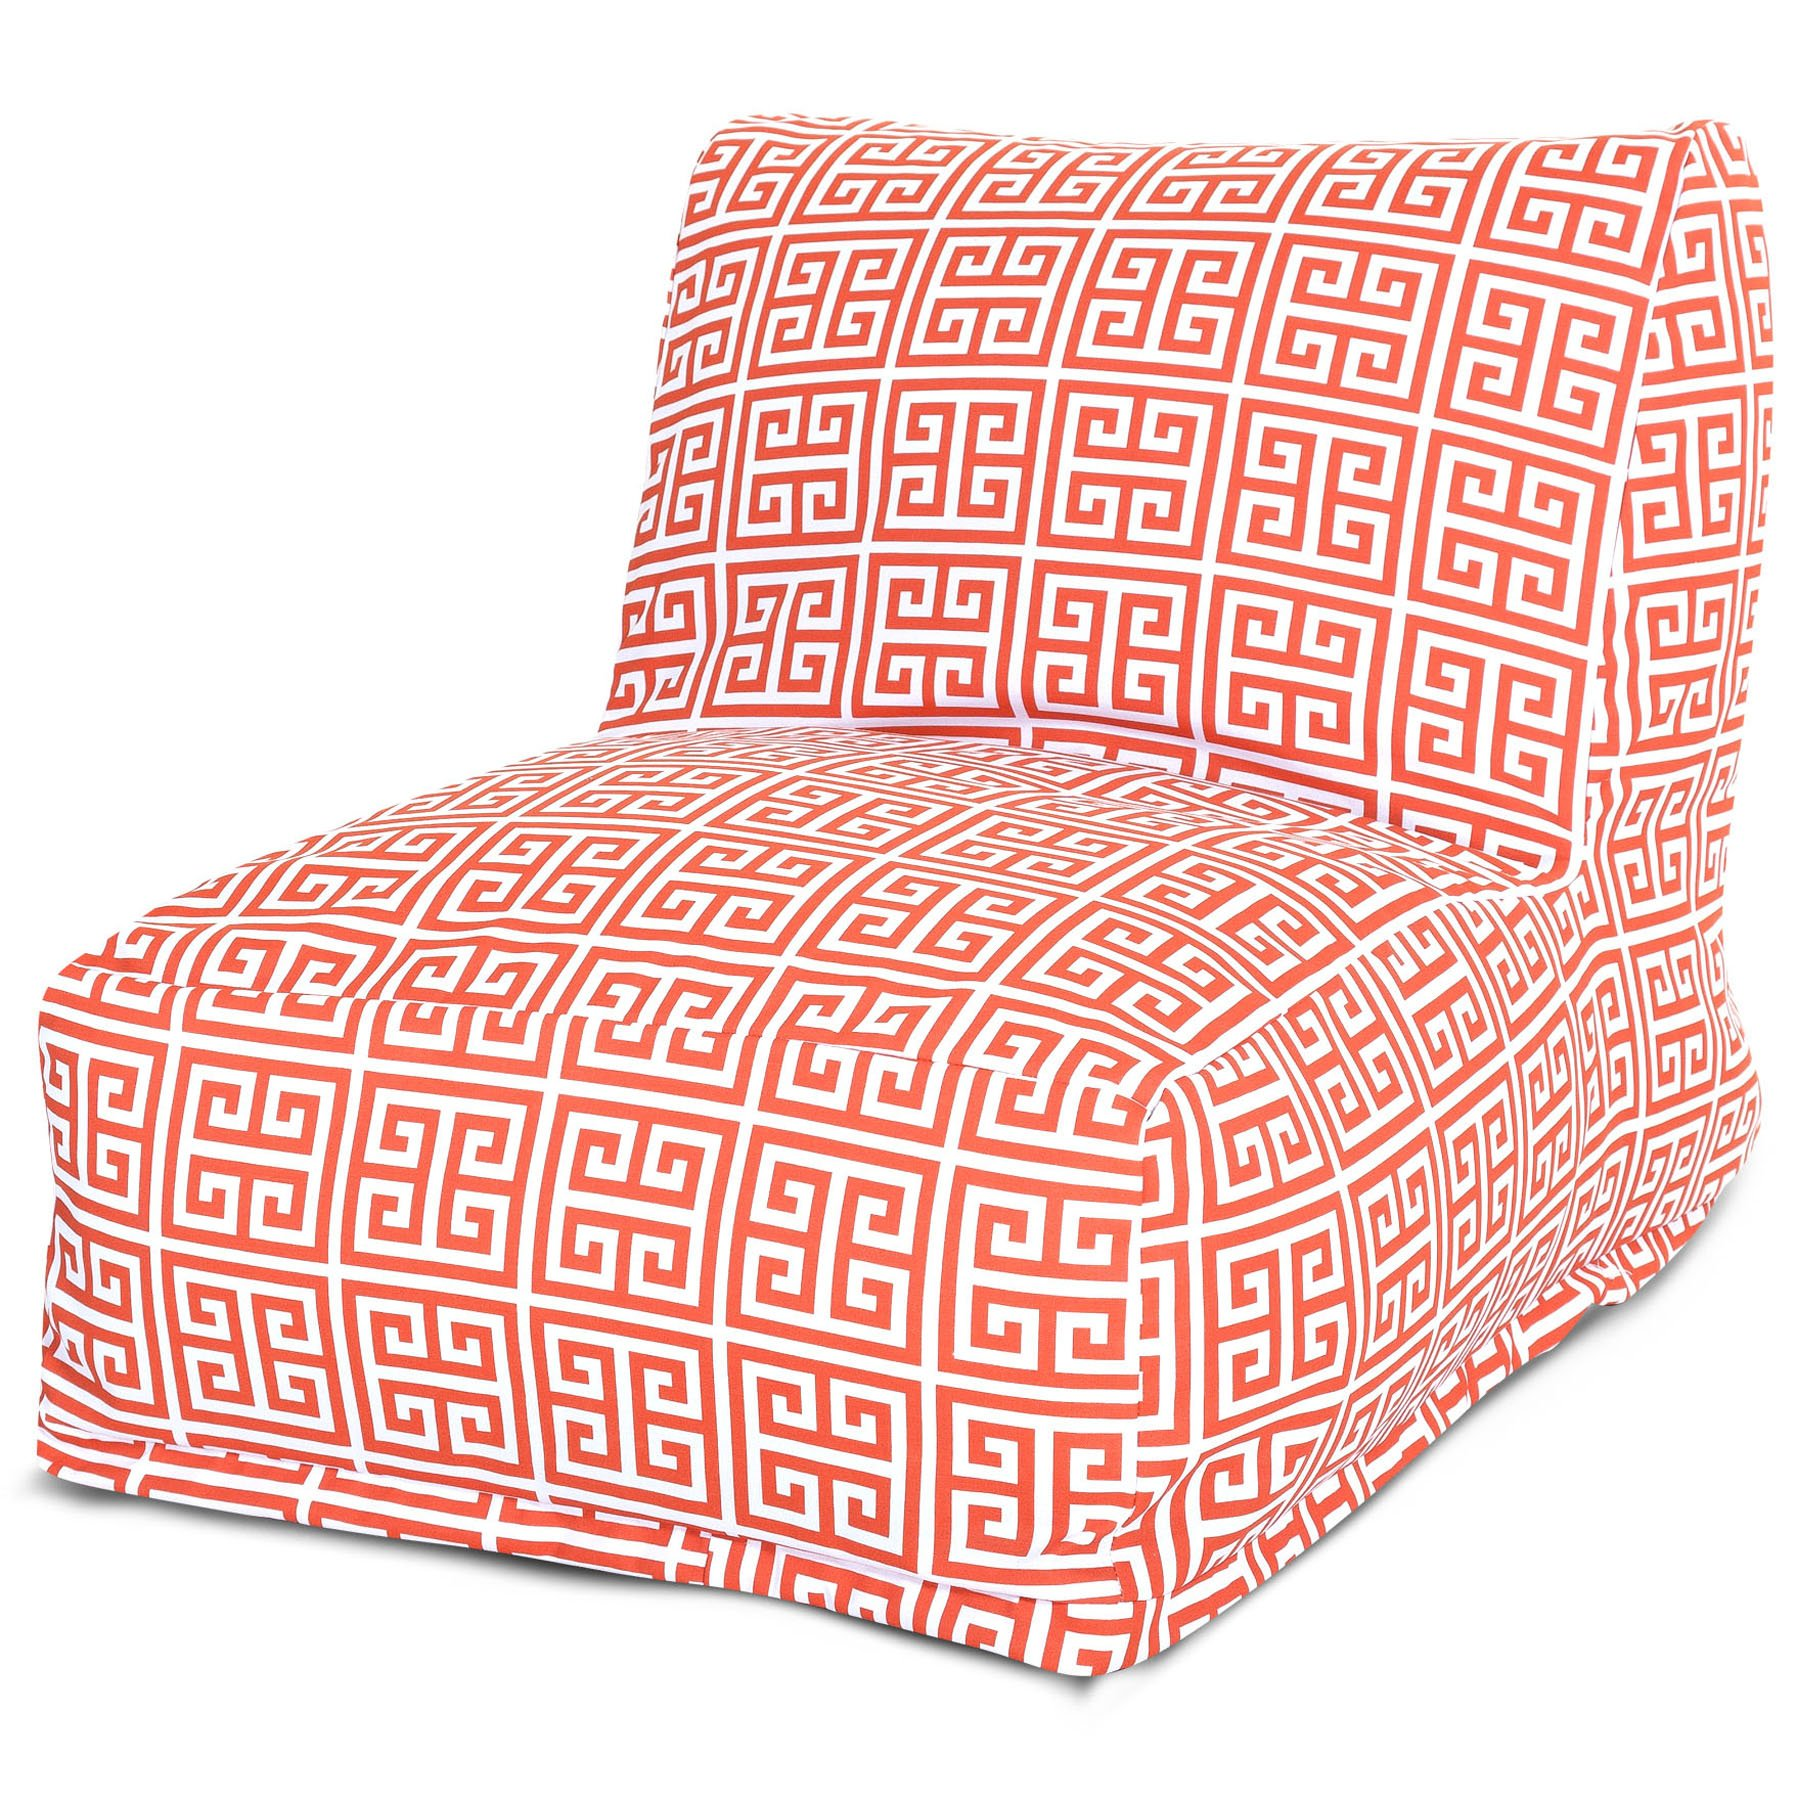 Majestic Home Goods Towers Bean Bag Chair Lounger, Orange